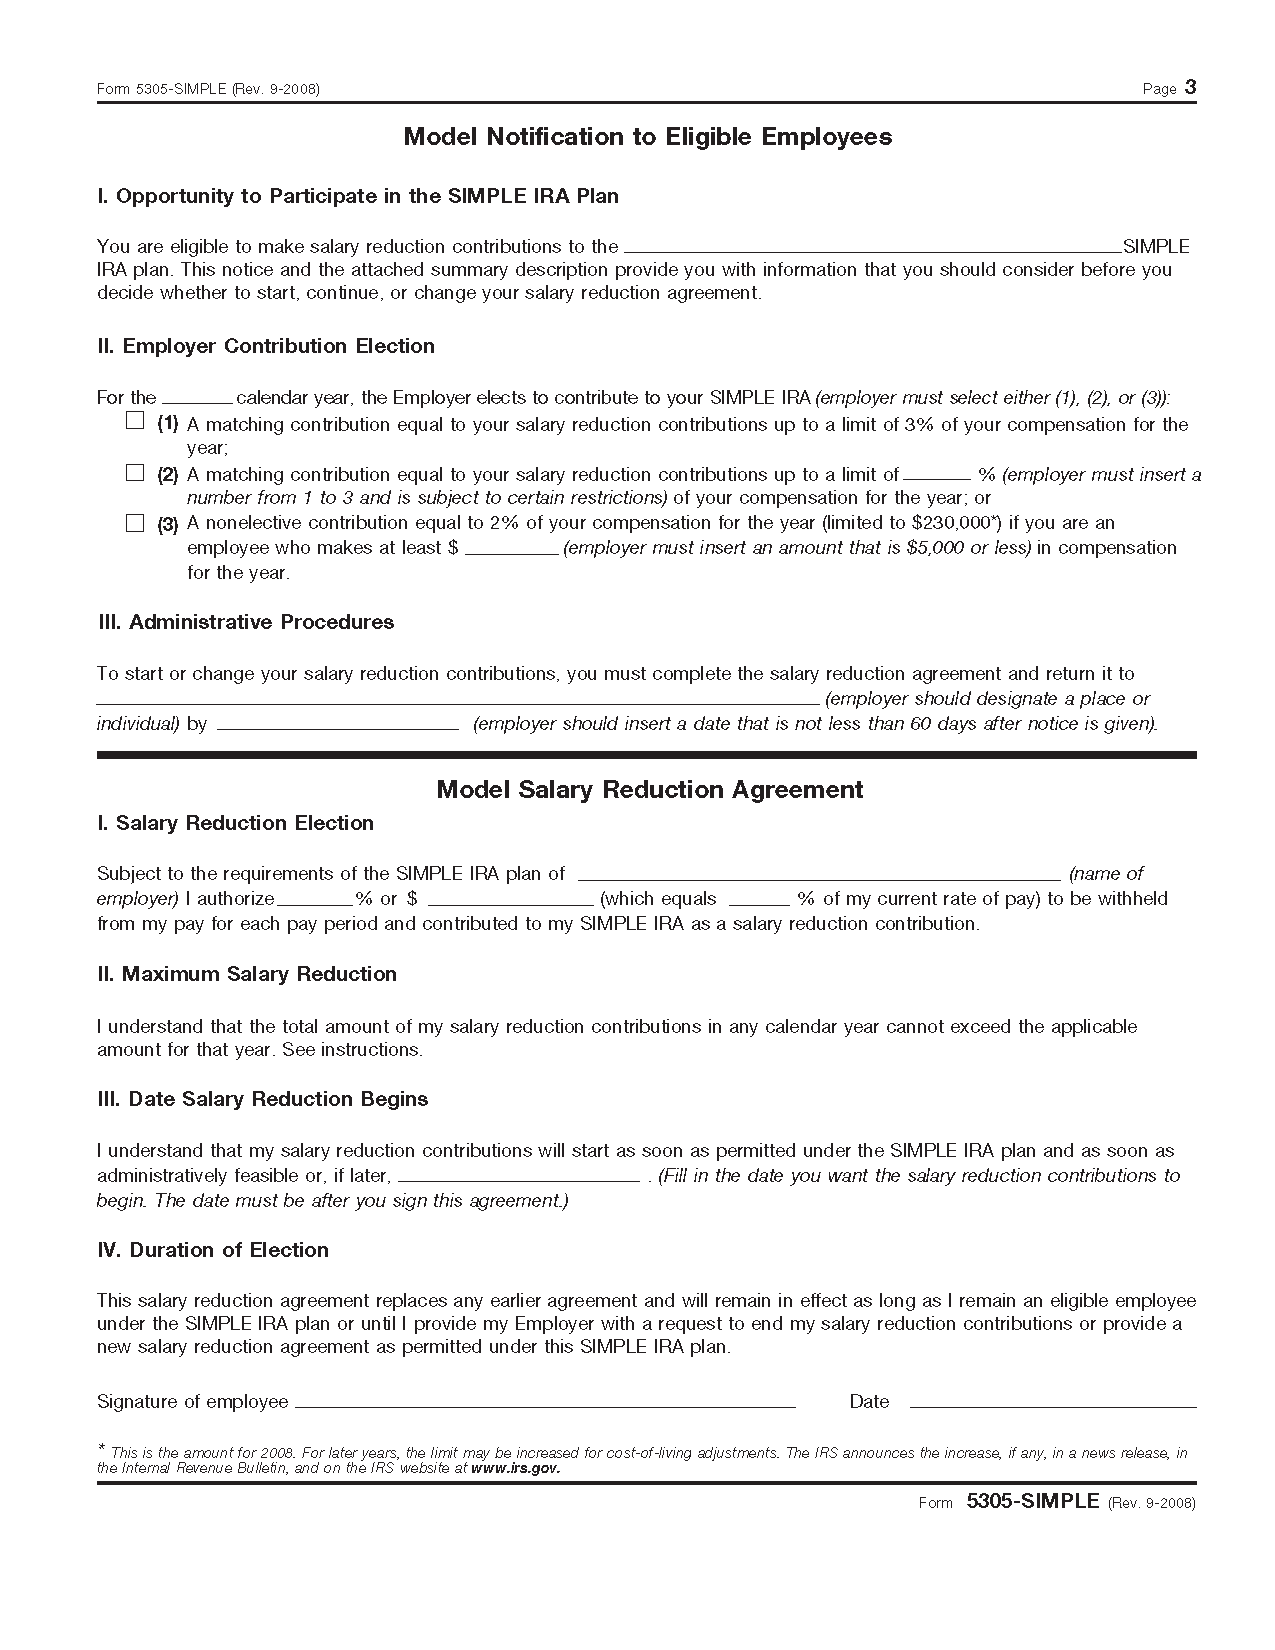 Irs form 5304 simple image collections standard form examples form 5305 simple savings incentive match plan for employees of view all 2011 irs tax forms falaconquin